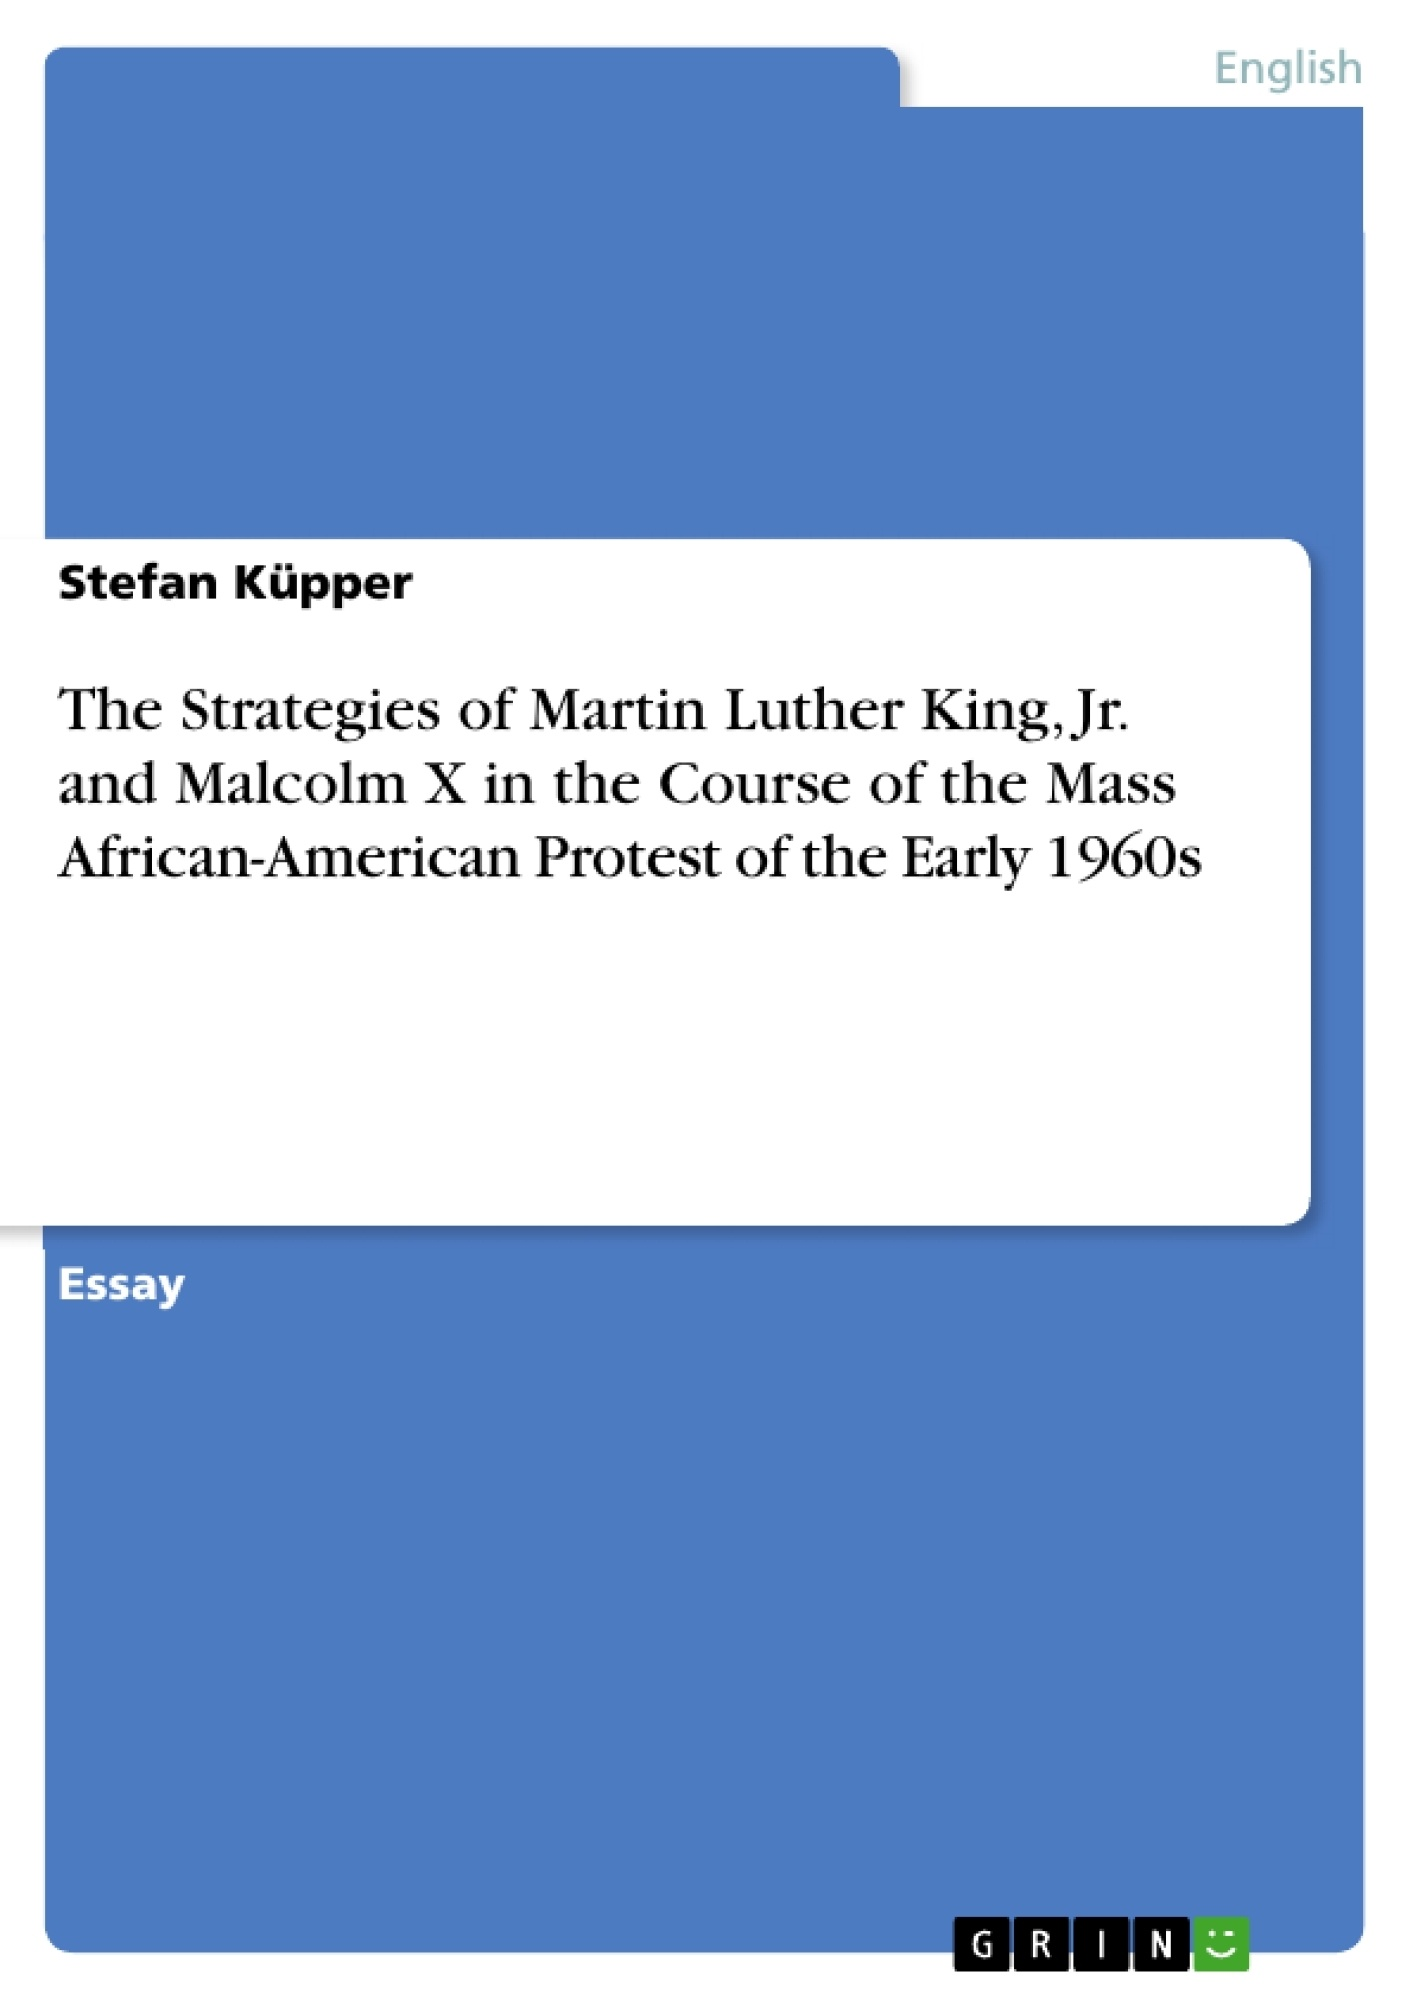 essays by martin luther king jr essay essay on martin luther king  the strategies of martin luther king jr and malcolm x in the the strategies of martin